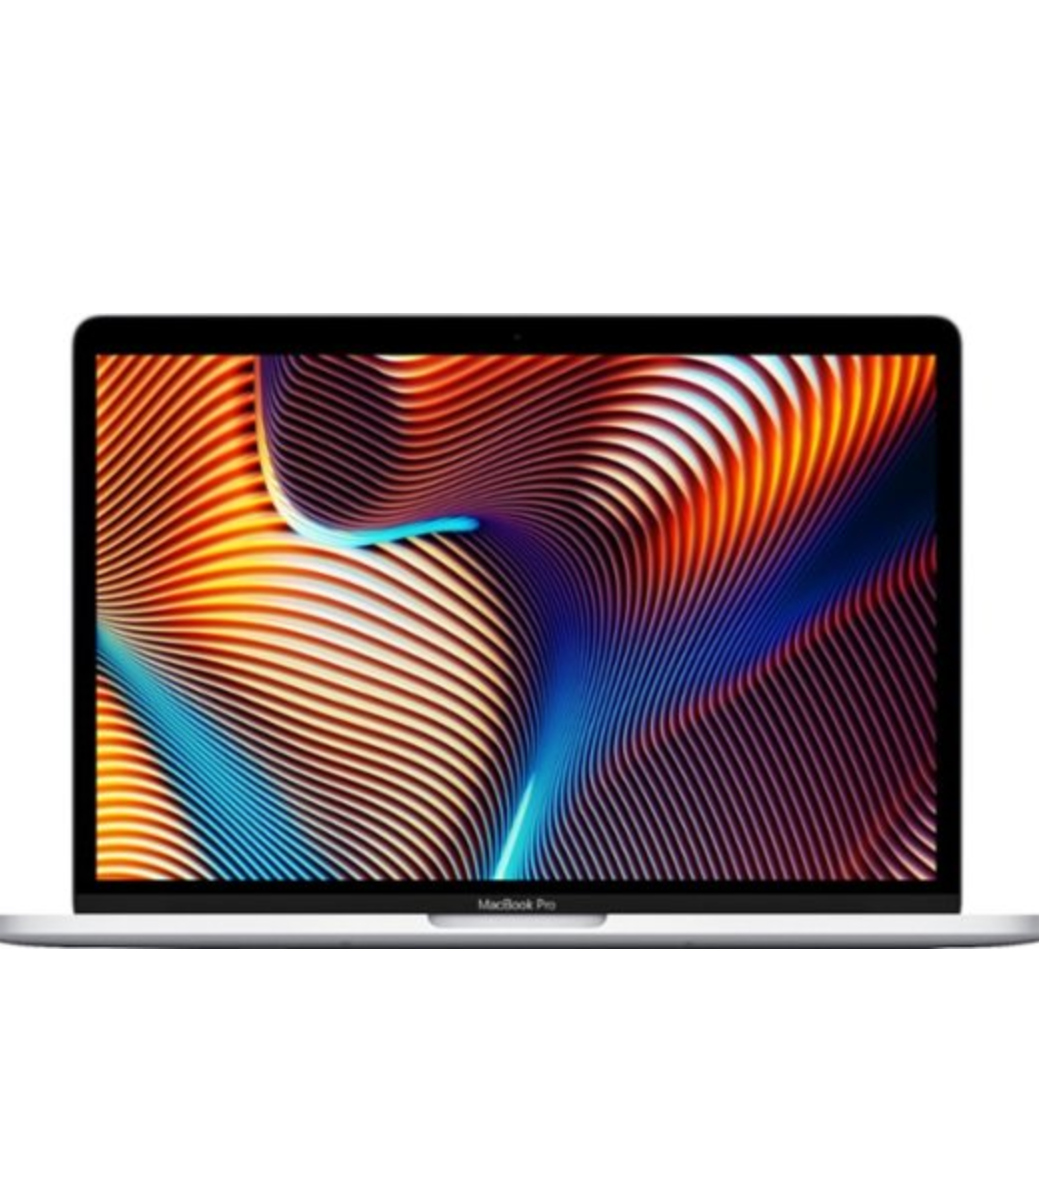 """MacBook Pro - 13"""" Display with Touch Bar - Intel Core i5 - 8GB Memory - 512GB SSD - Silver"""